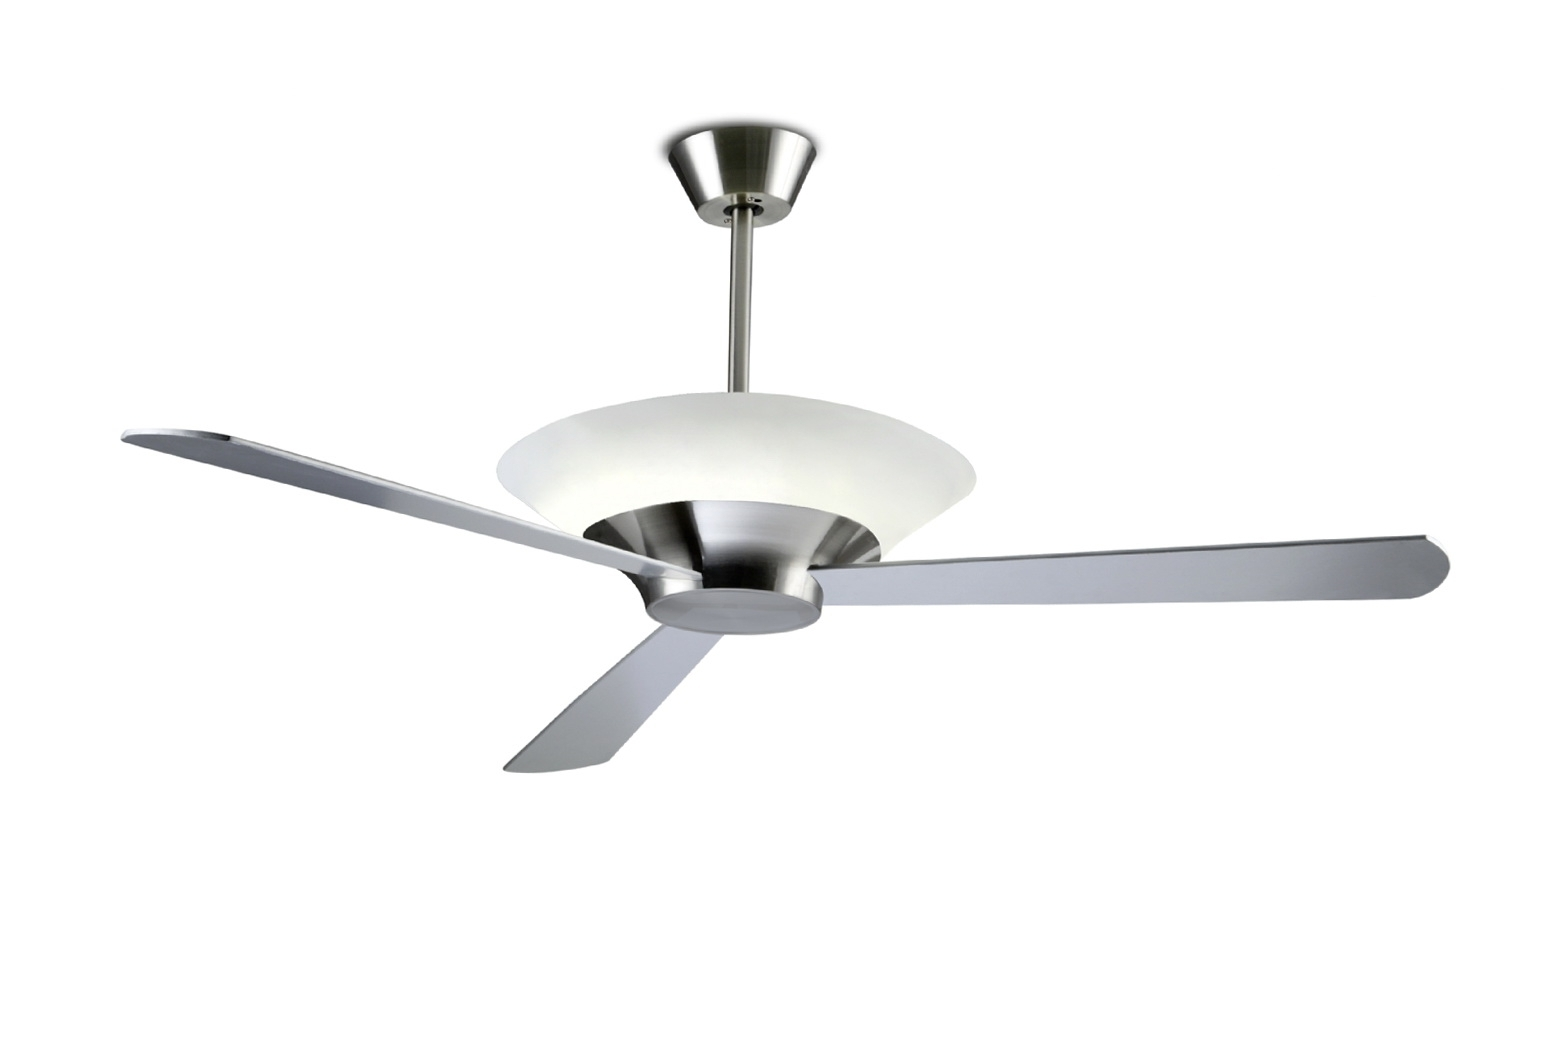 Mercator Ceiling Fans Bunnings • Ceiling Fans Ideas Pertaining To Most Recent Outdoor Ceiling Fans At Bunnings (View 9 of 20)